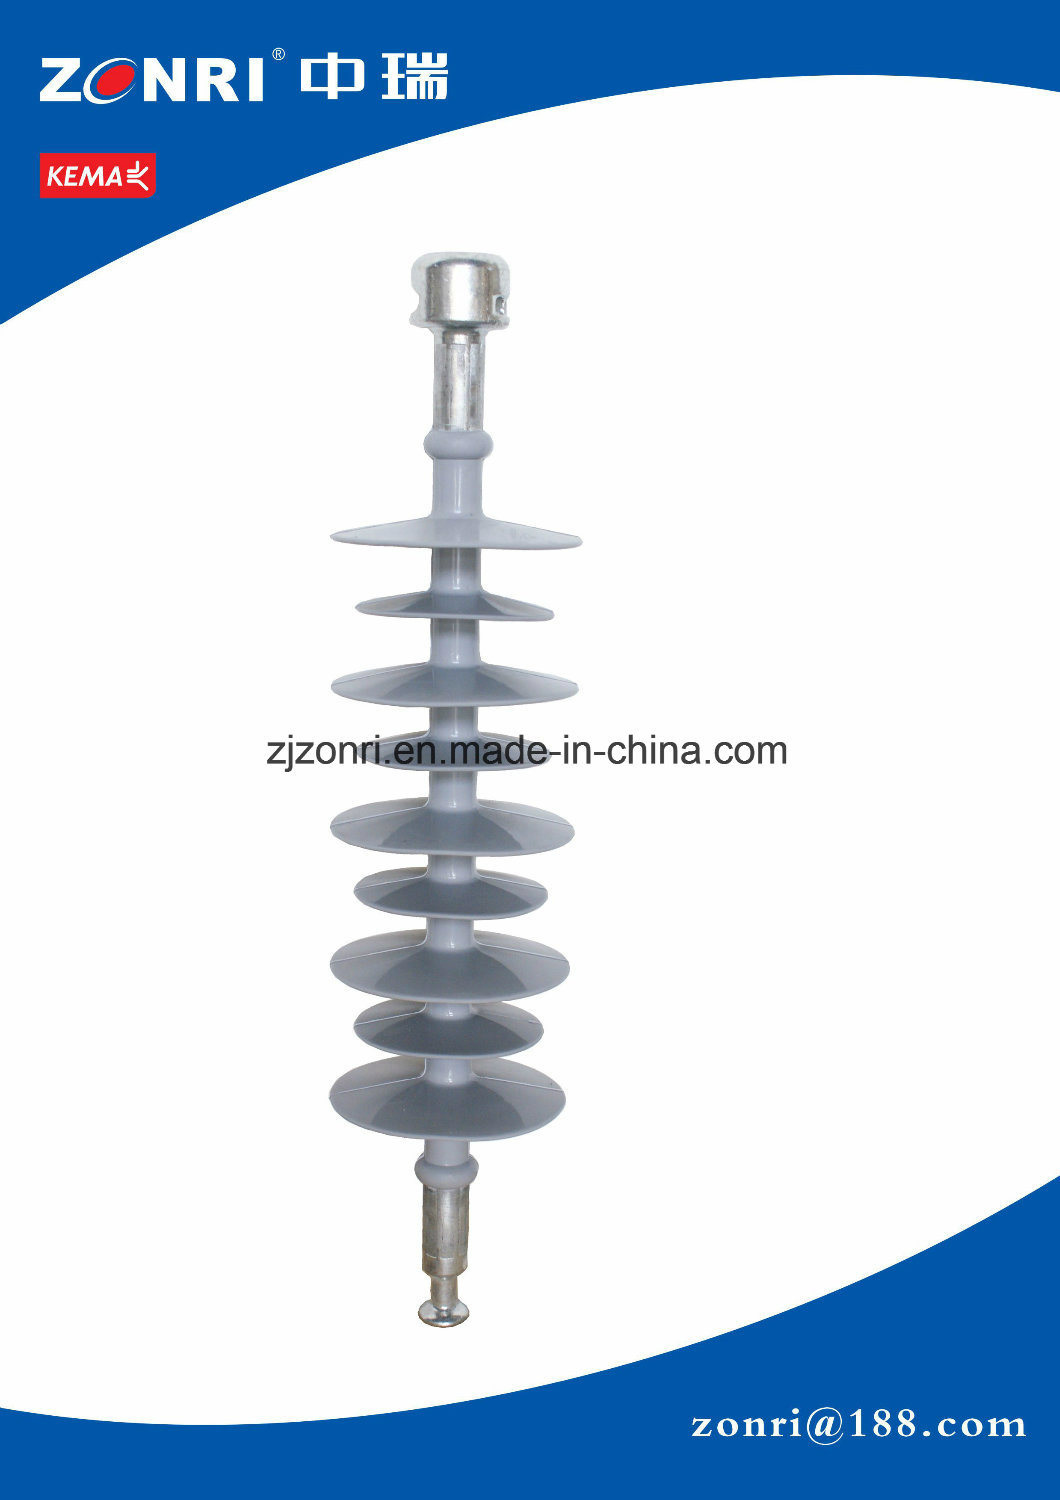 Export Insulator Suspension Type Fxbw-36/120-Sbfor Power Transmission